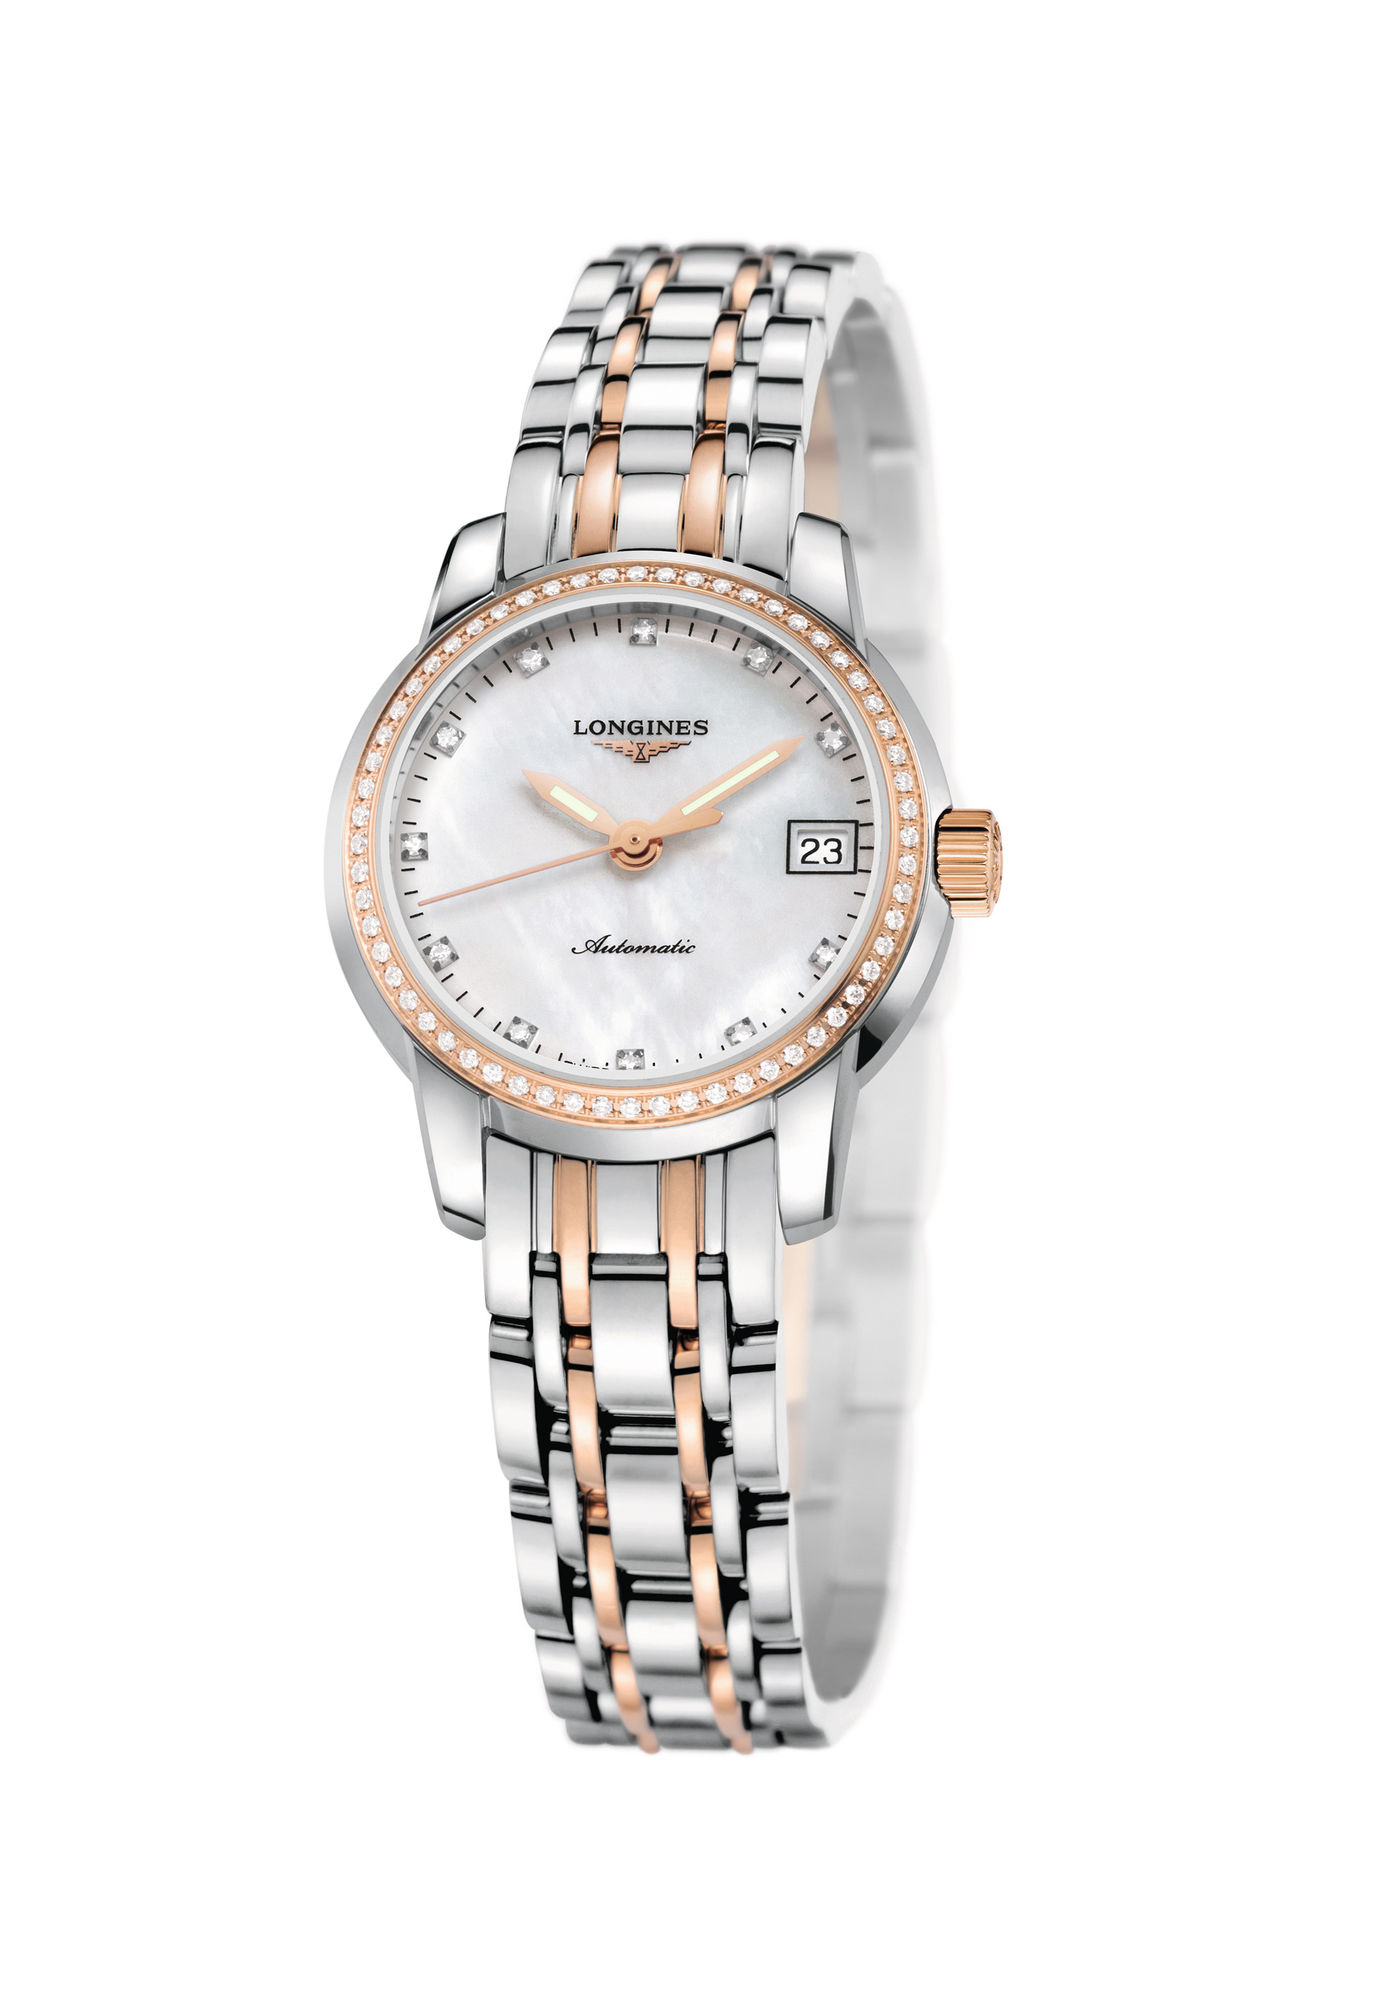 Longines The Longines Saint-Imier Collection Watch 17